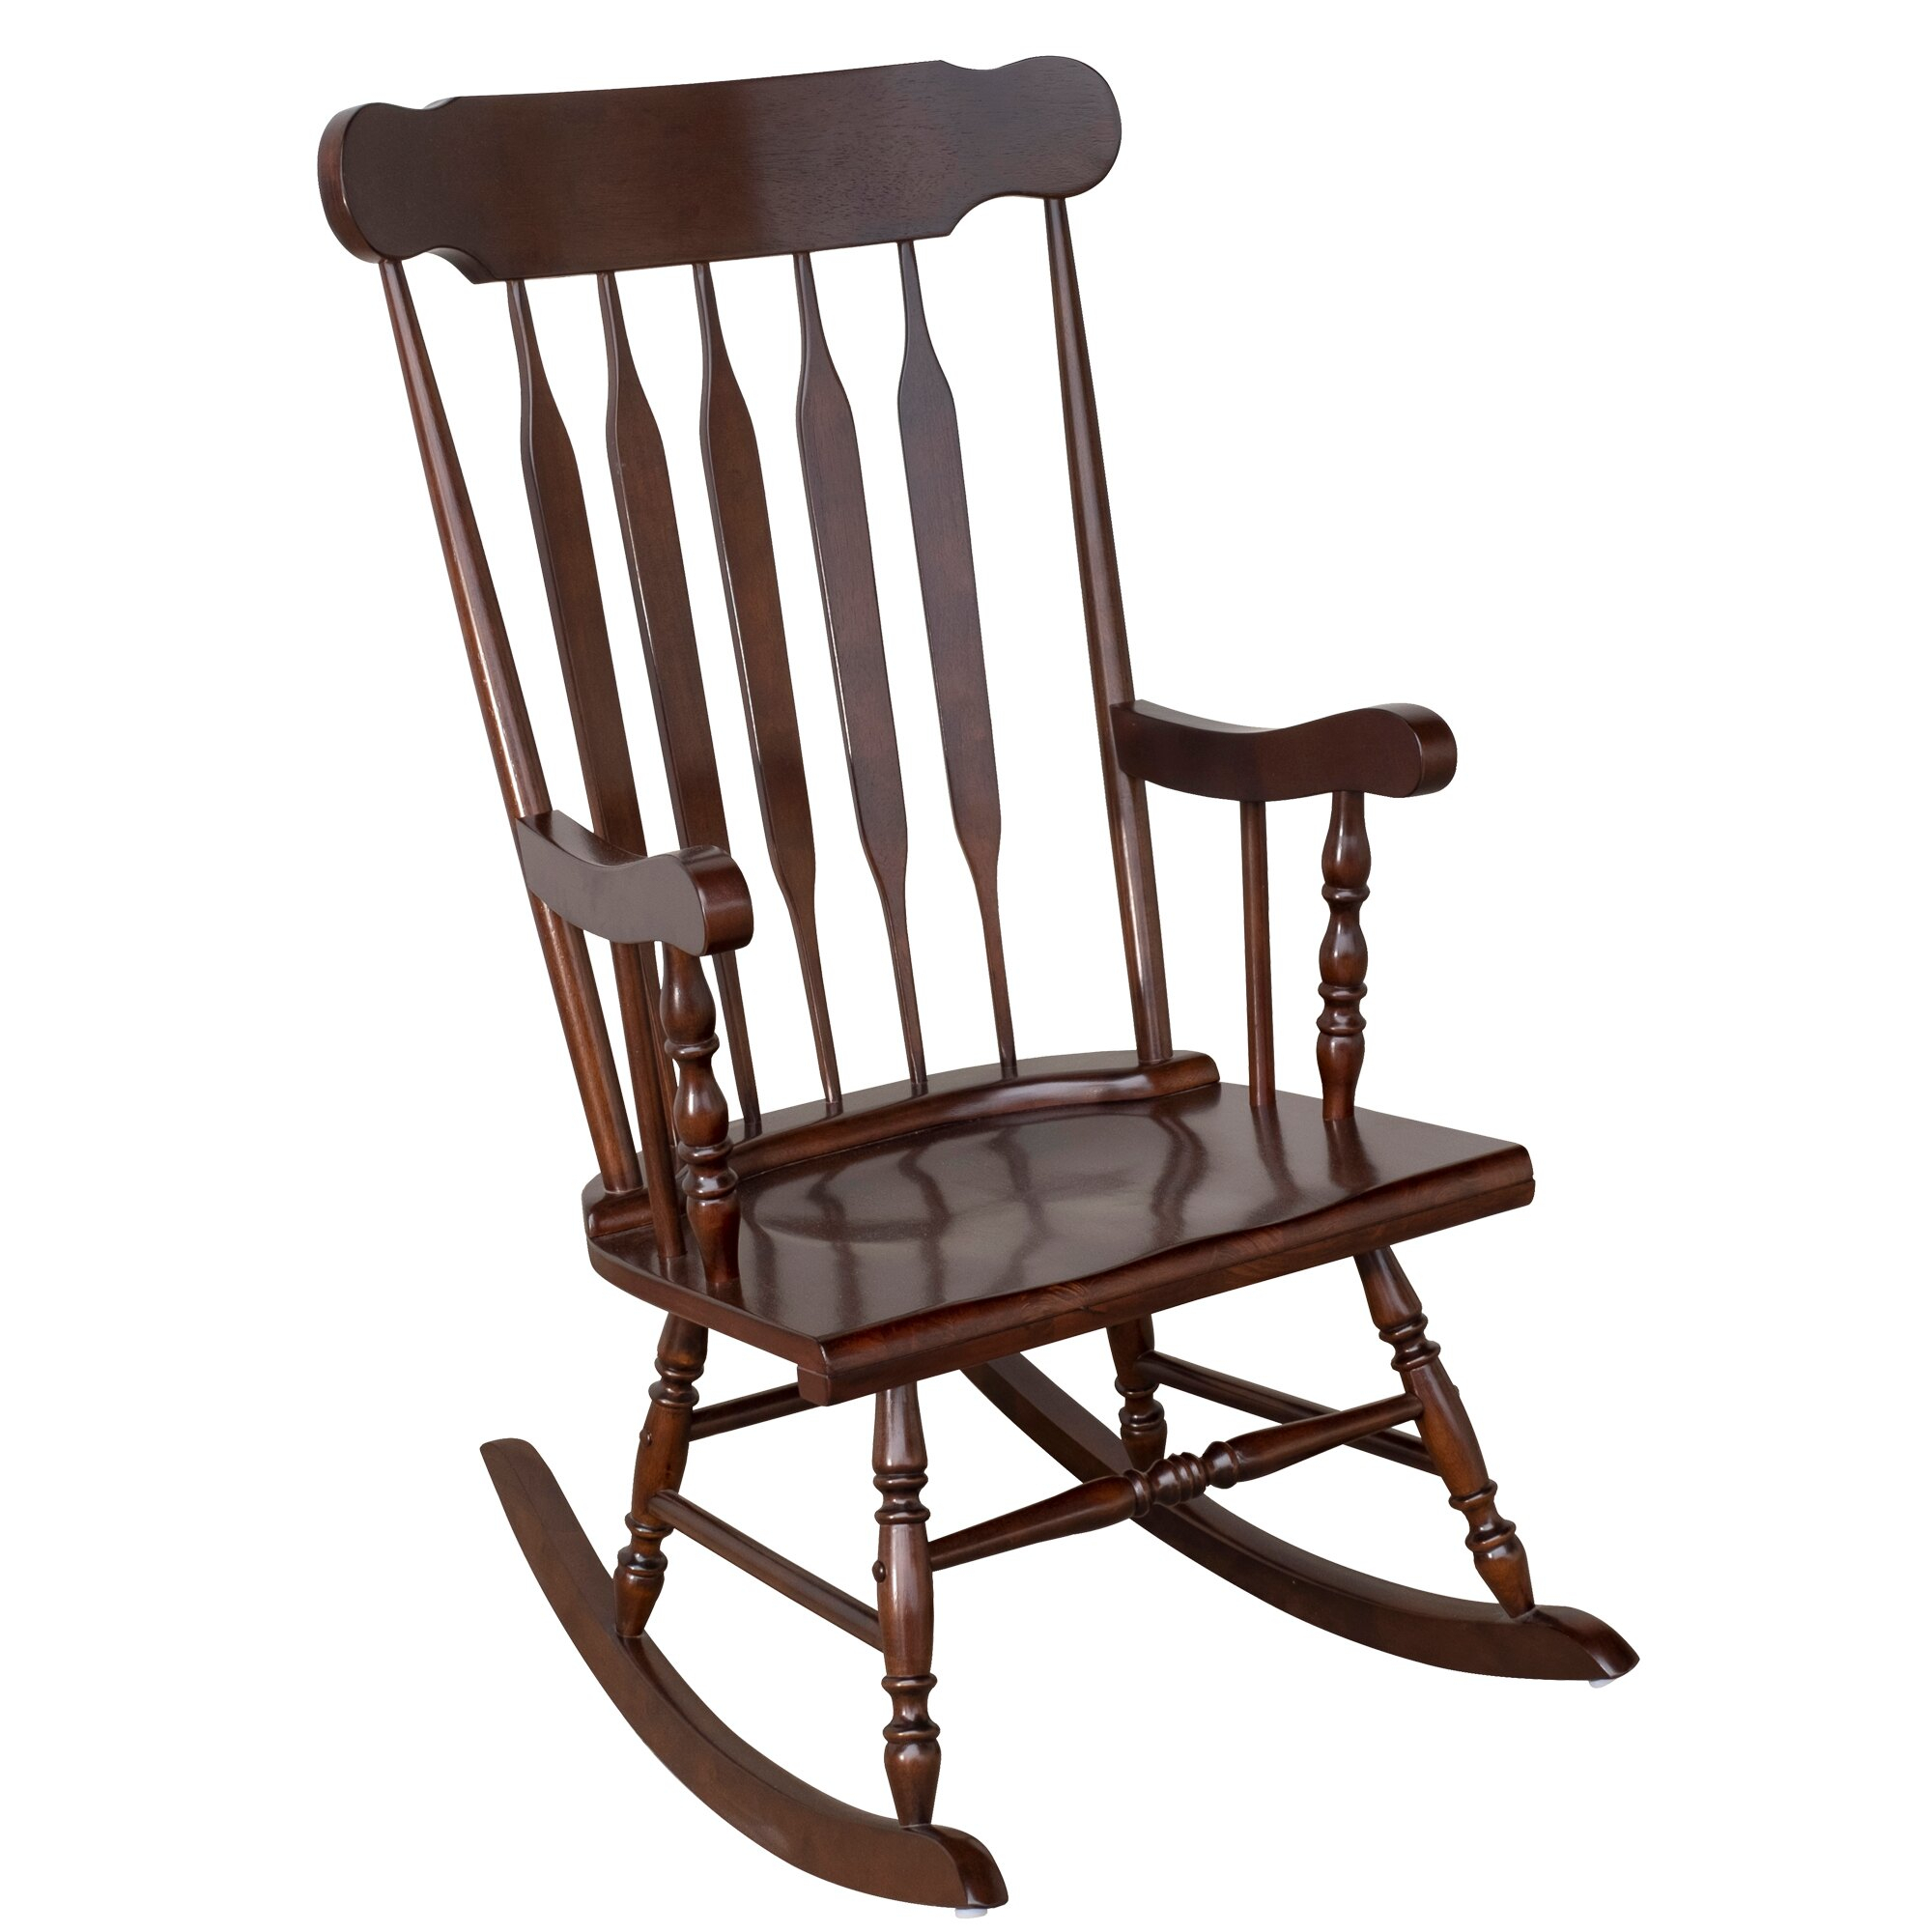 Aosom: Homcom Traditional Slat Wood Rocking Chair Indoor Porch Furniture  For Patio Living Room – Dark Brown | Rakuten Pertaining To Traditional Wooden Porch Rocking Chairs (#3 of 20)